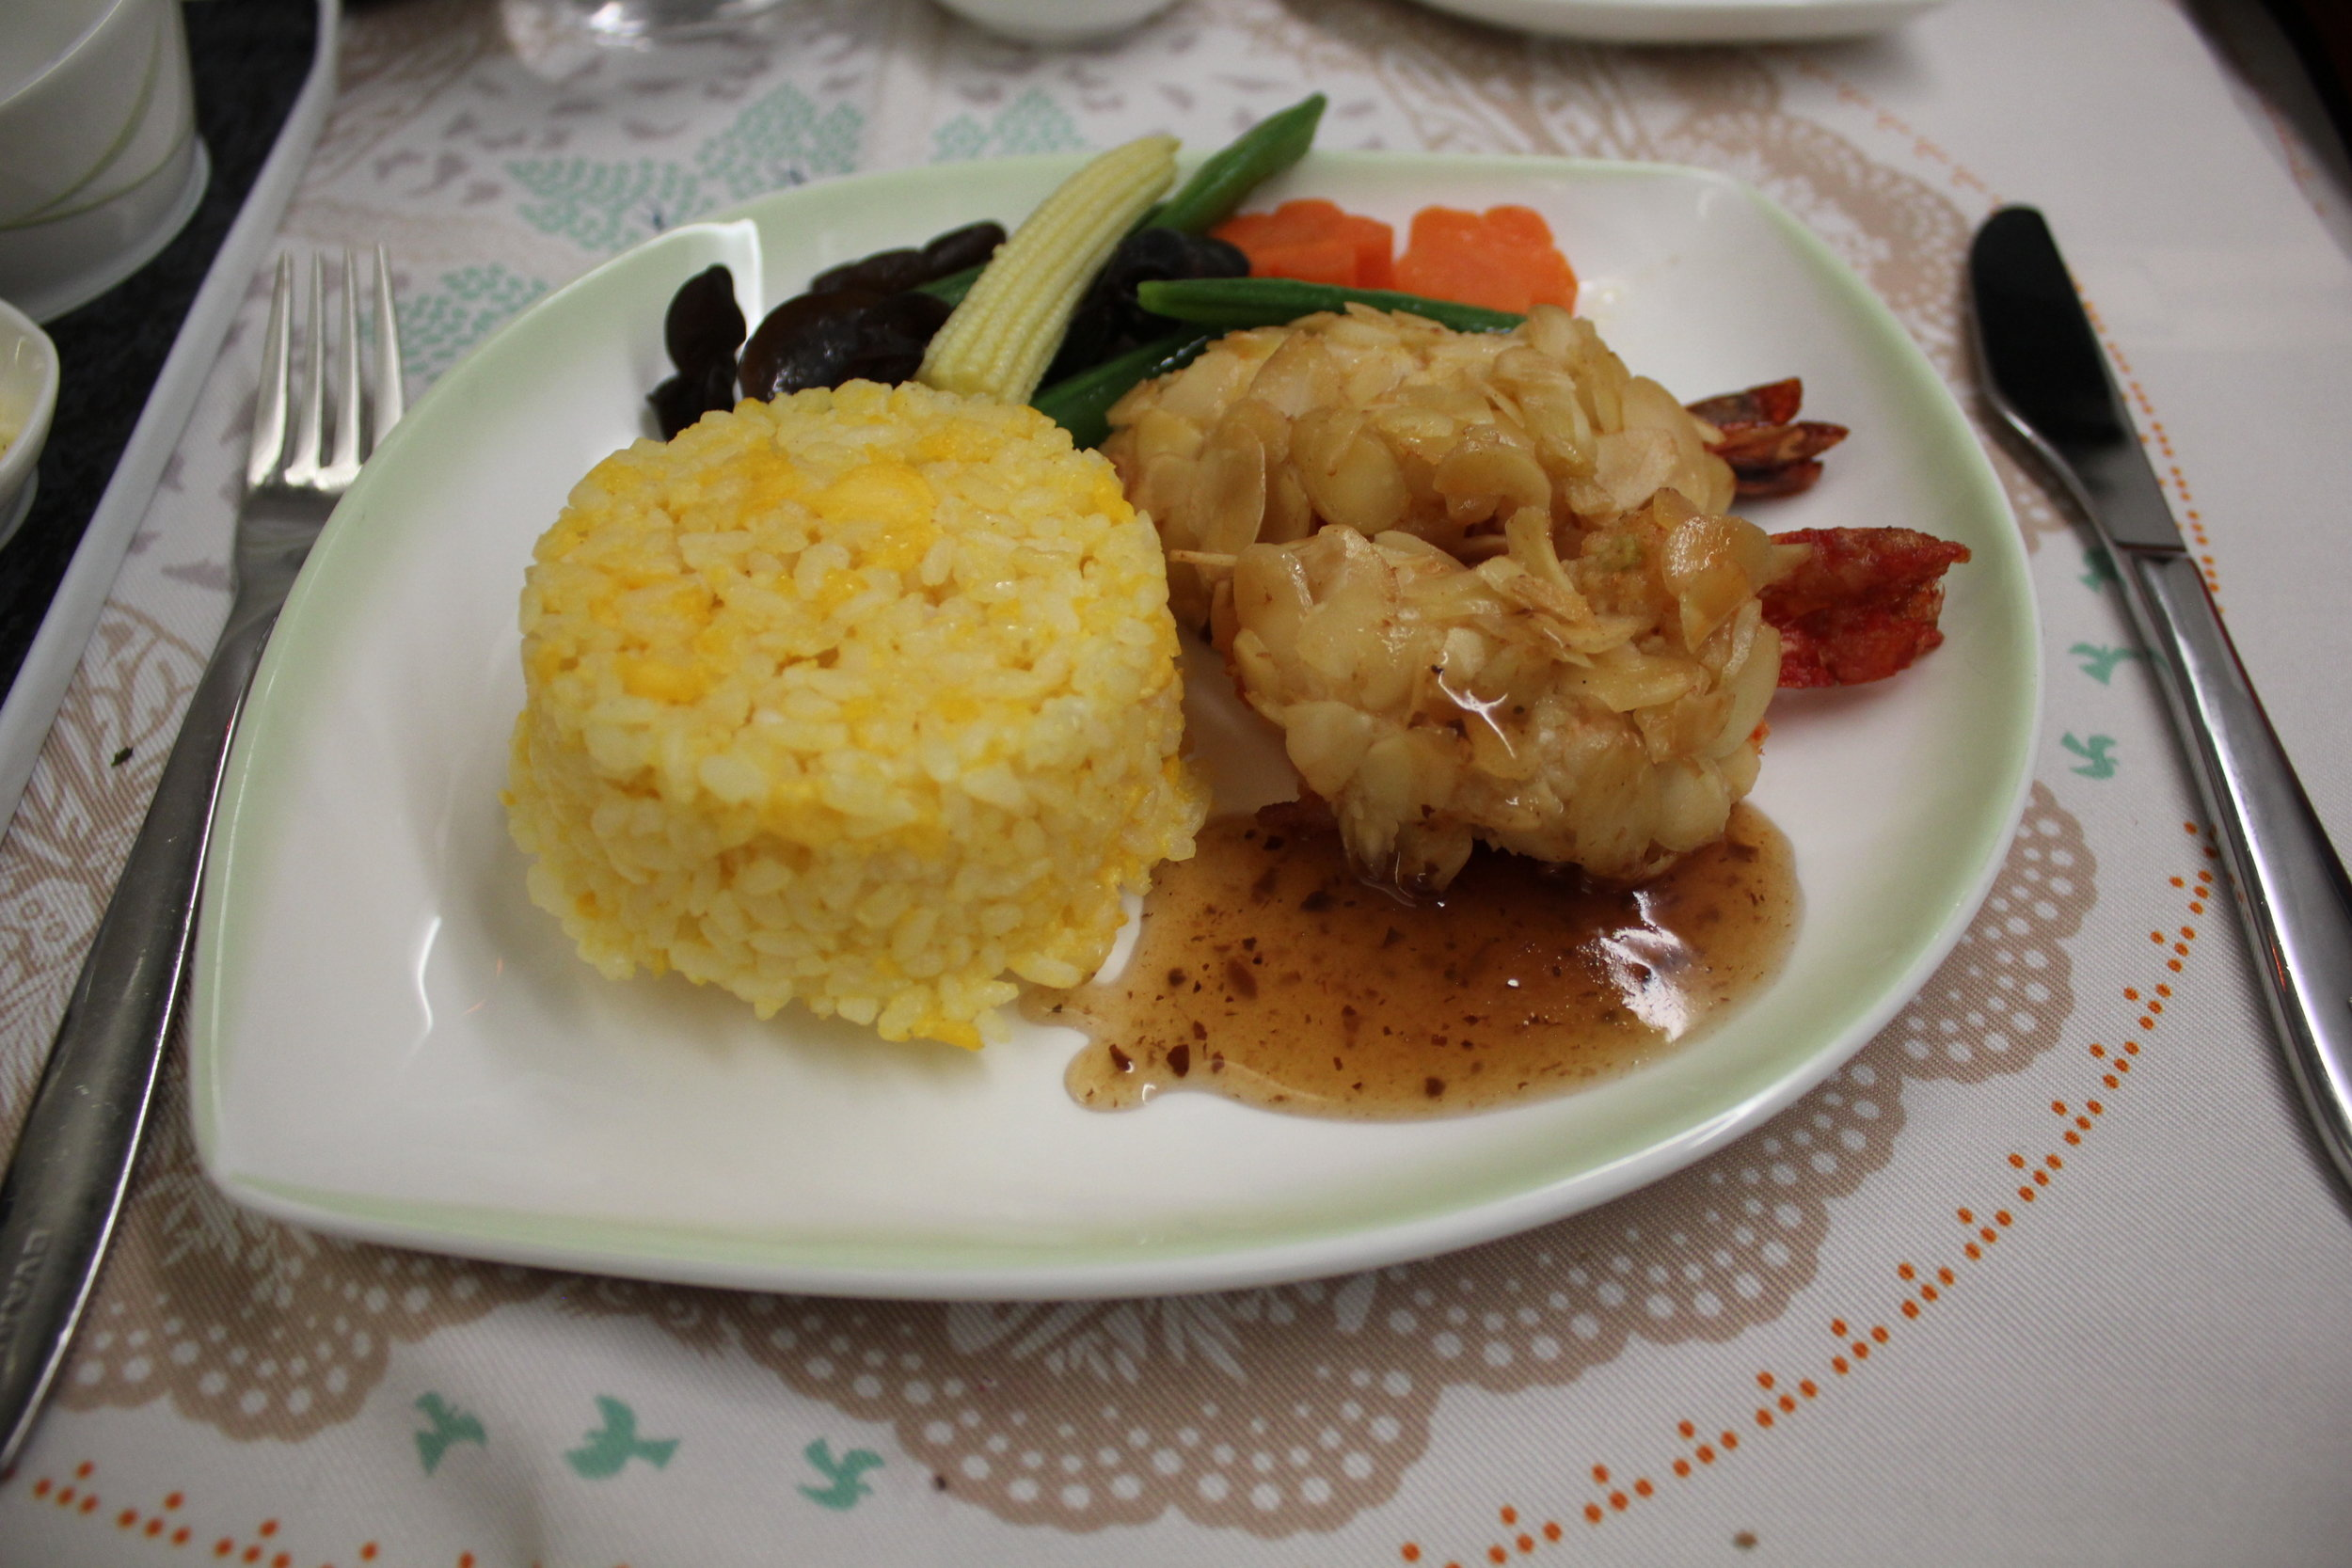 EVA Air business class – Golden fried prawn coated with almond flakes